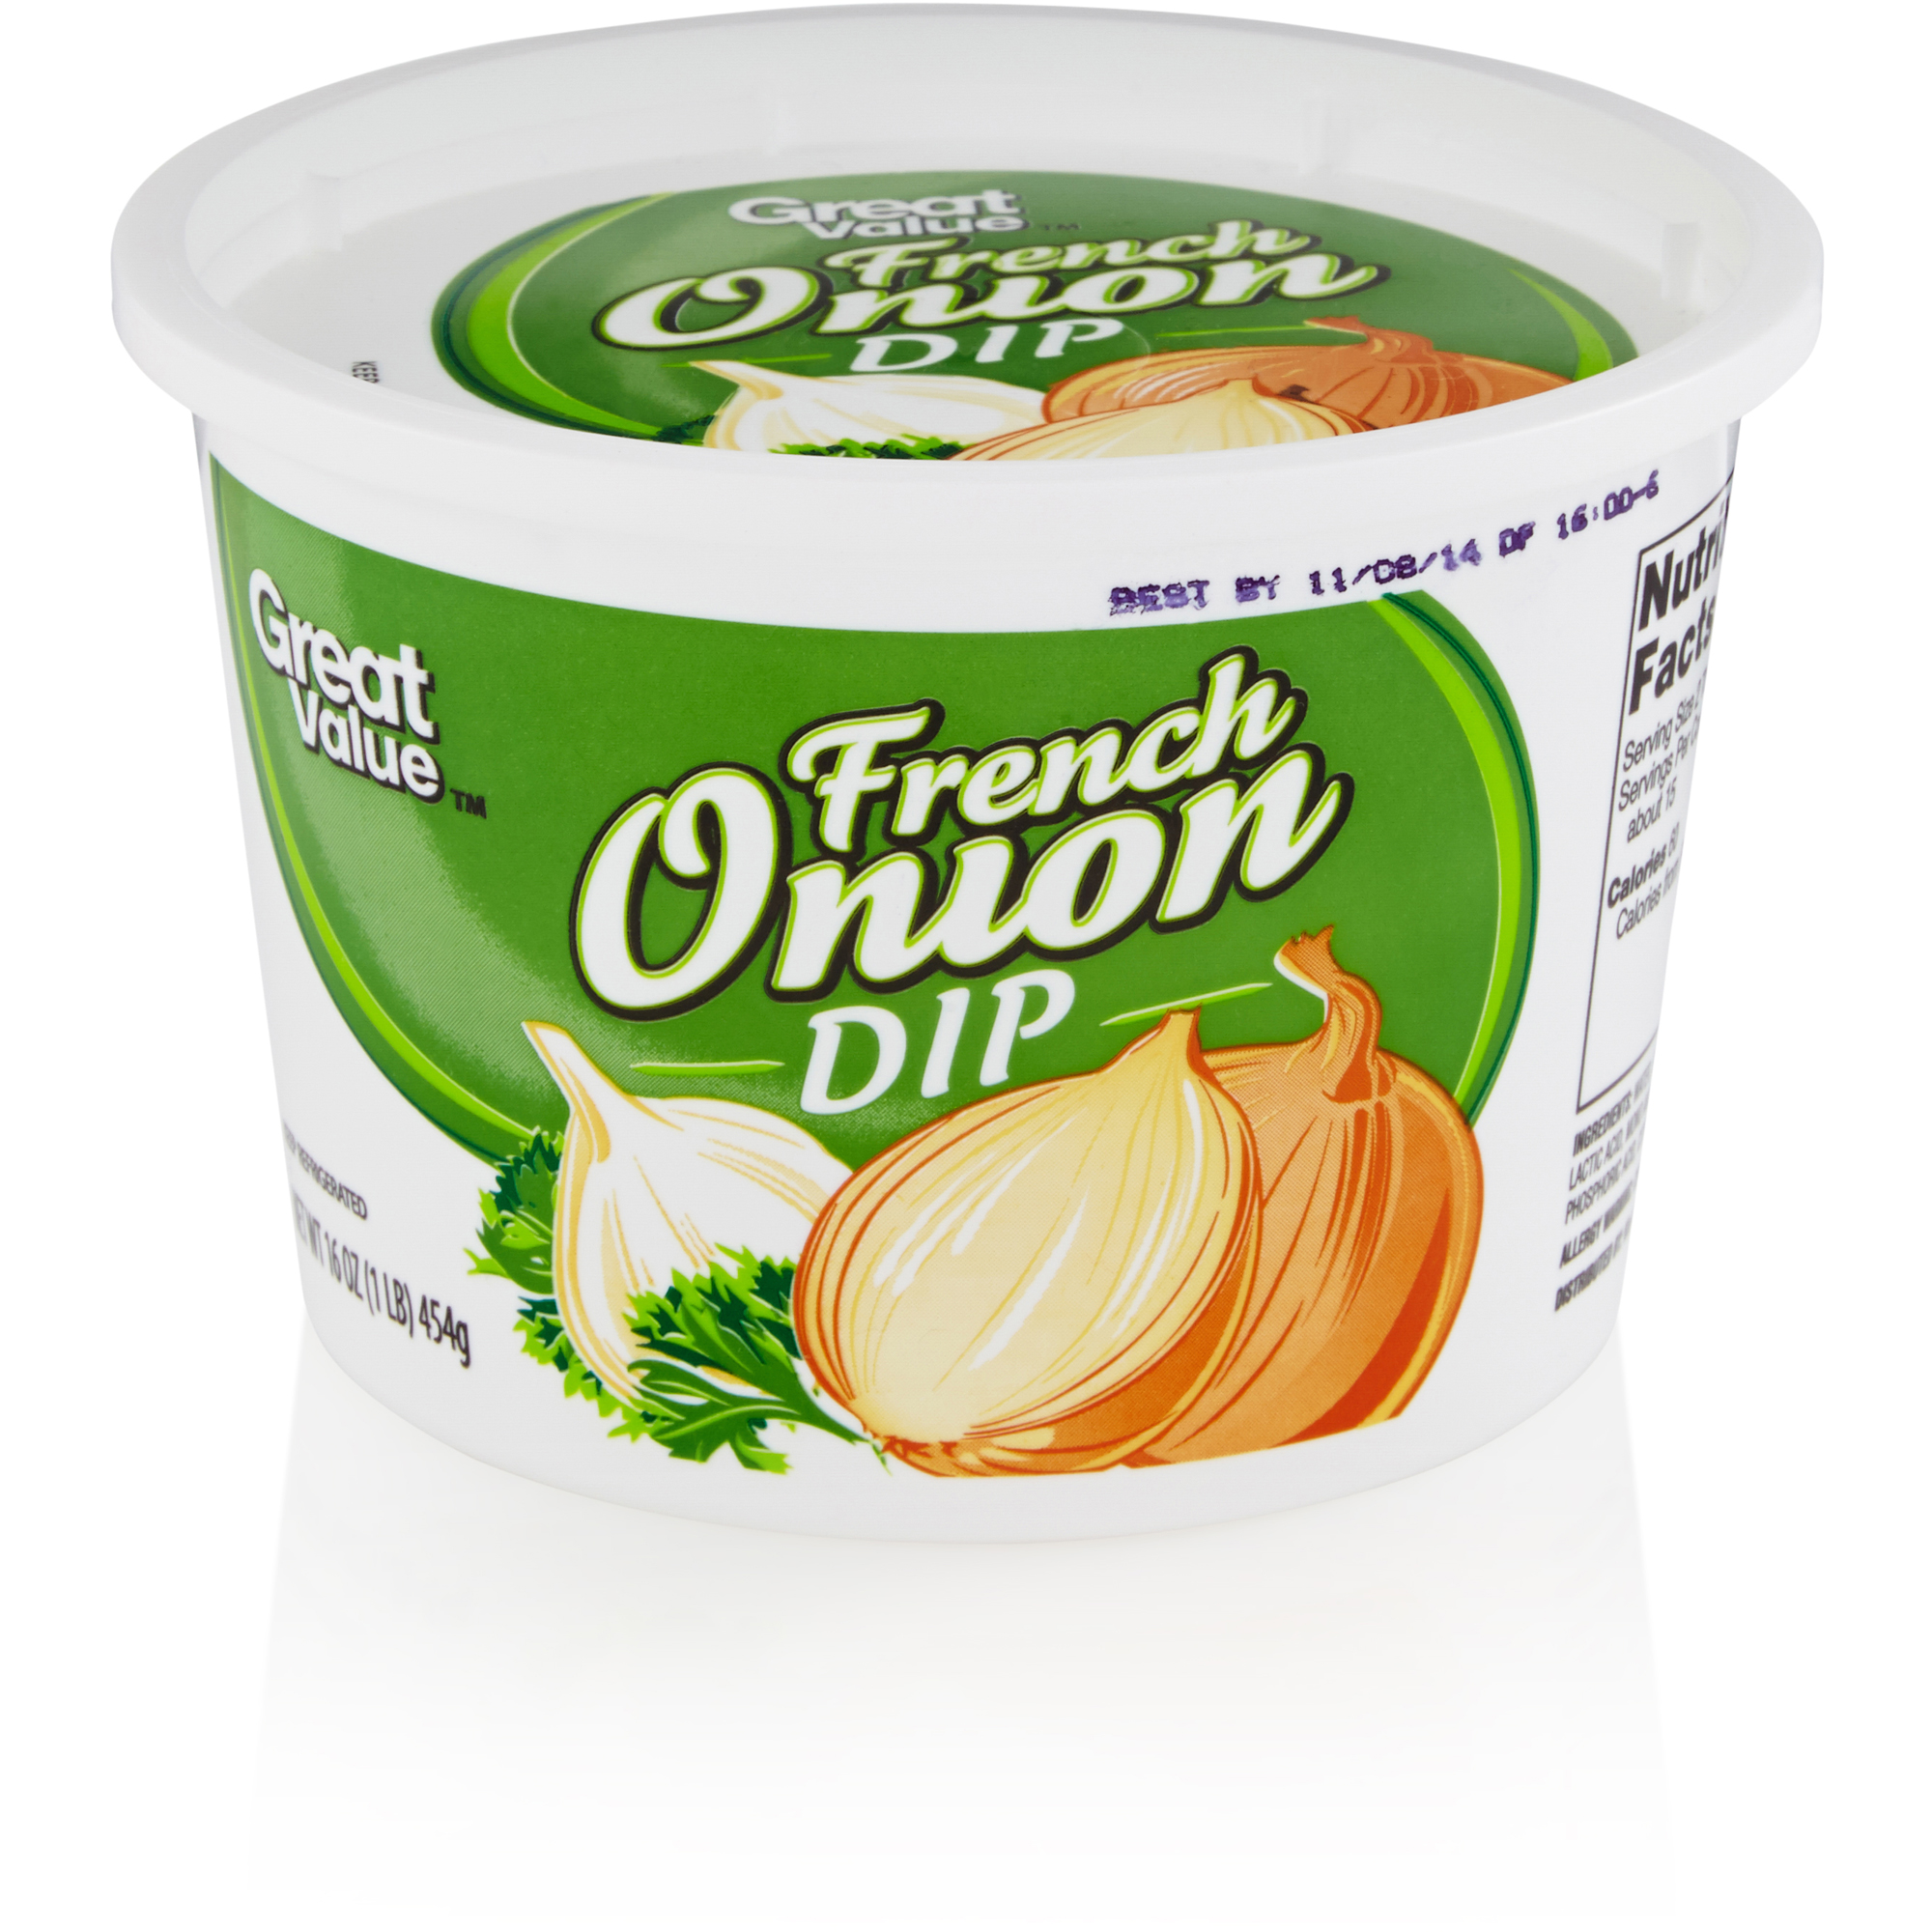 Great Value Dip French Onion, 16 oz